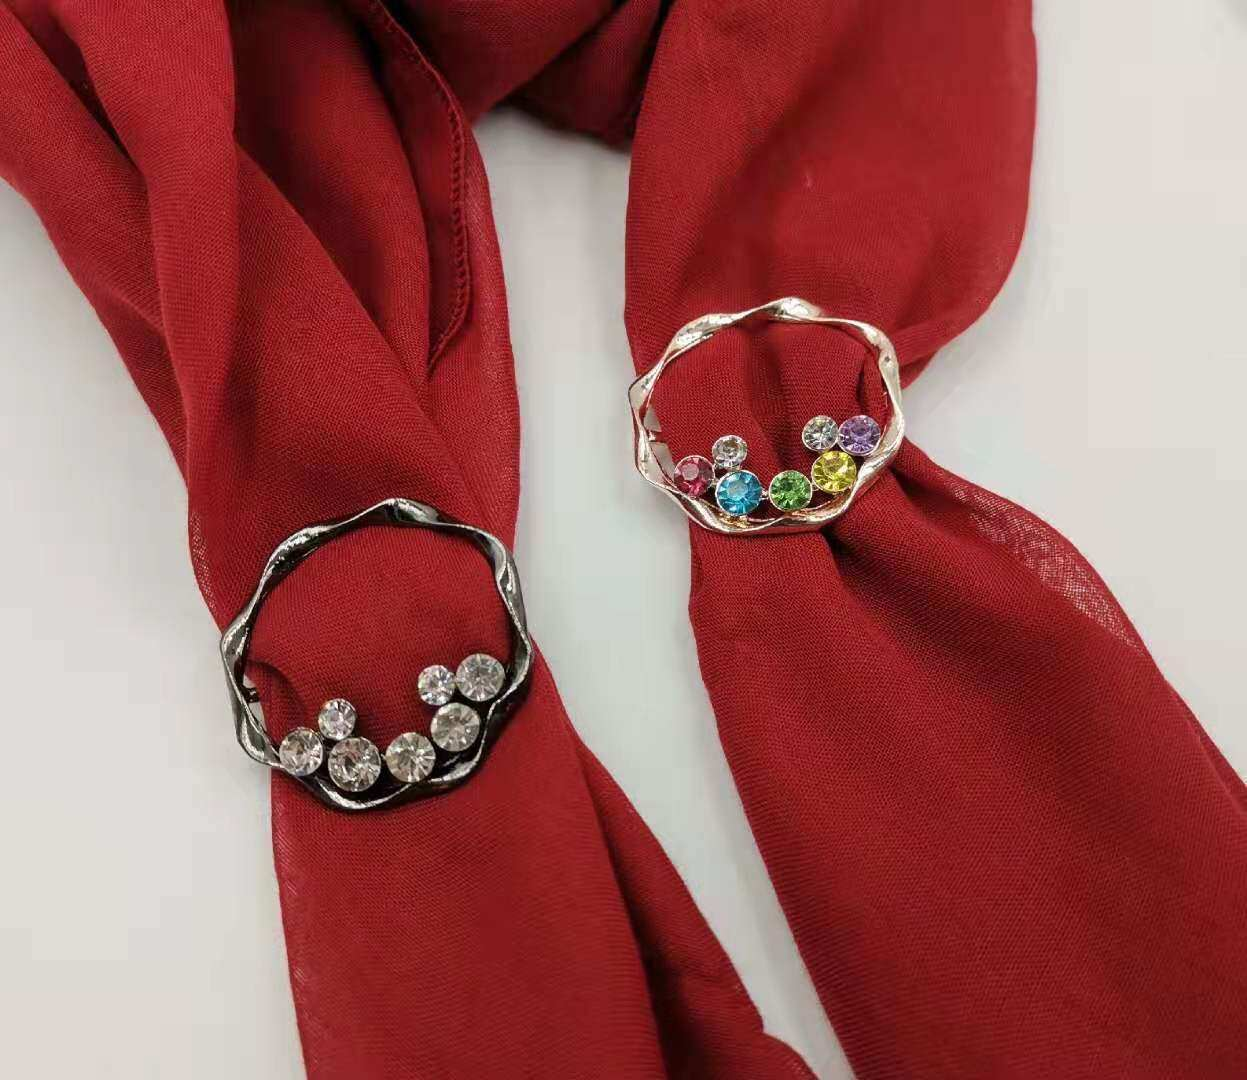 KOREA BROOCH RING BUCKLE TUDUNG